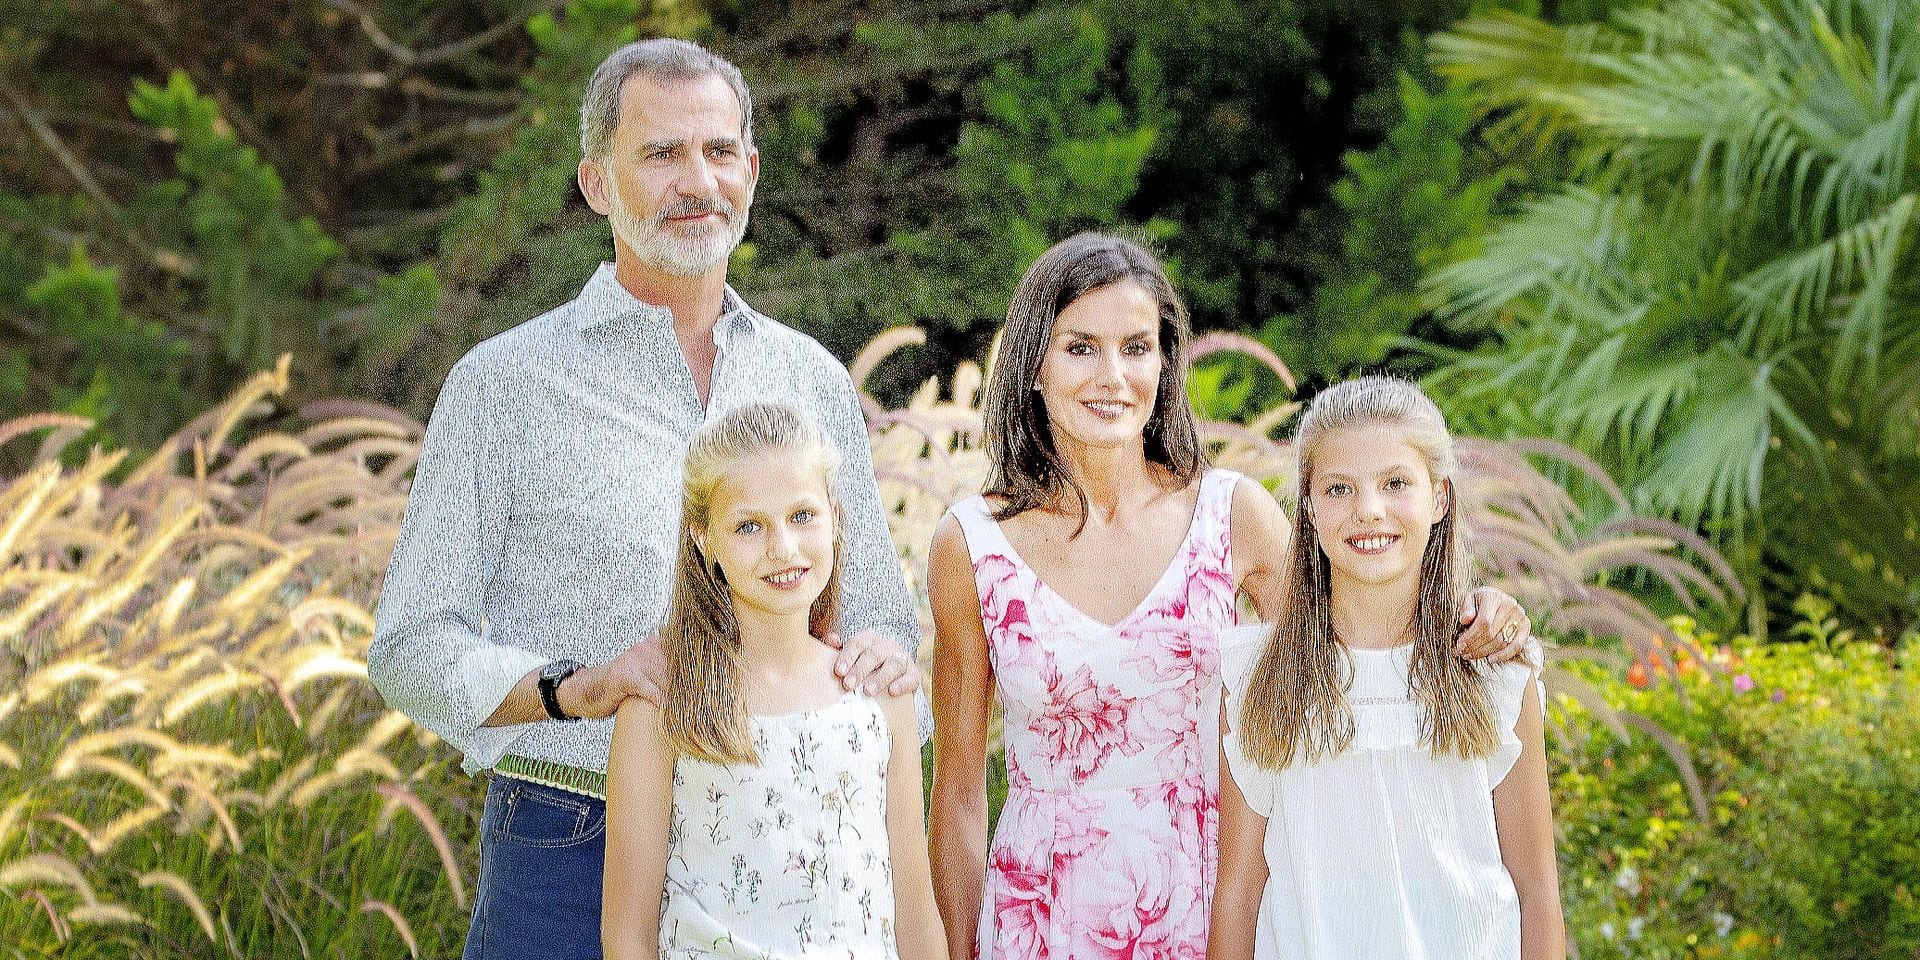 04-08-2019 Spain Queen Letizia and King Felipe and Princess Leonor and Princess Sofia pose for the media during the traditional summerholliday photosession at the Marivent palace on Palma de Mallorca. © PPE/Nieboer Reporters / PPE